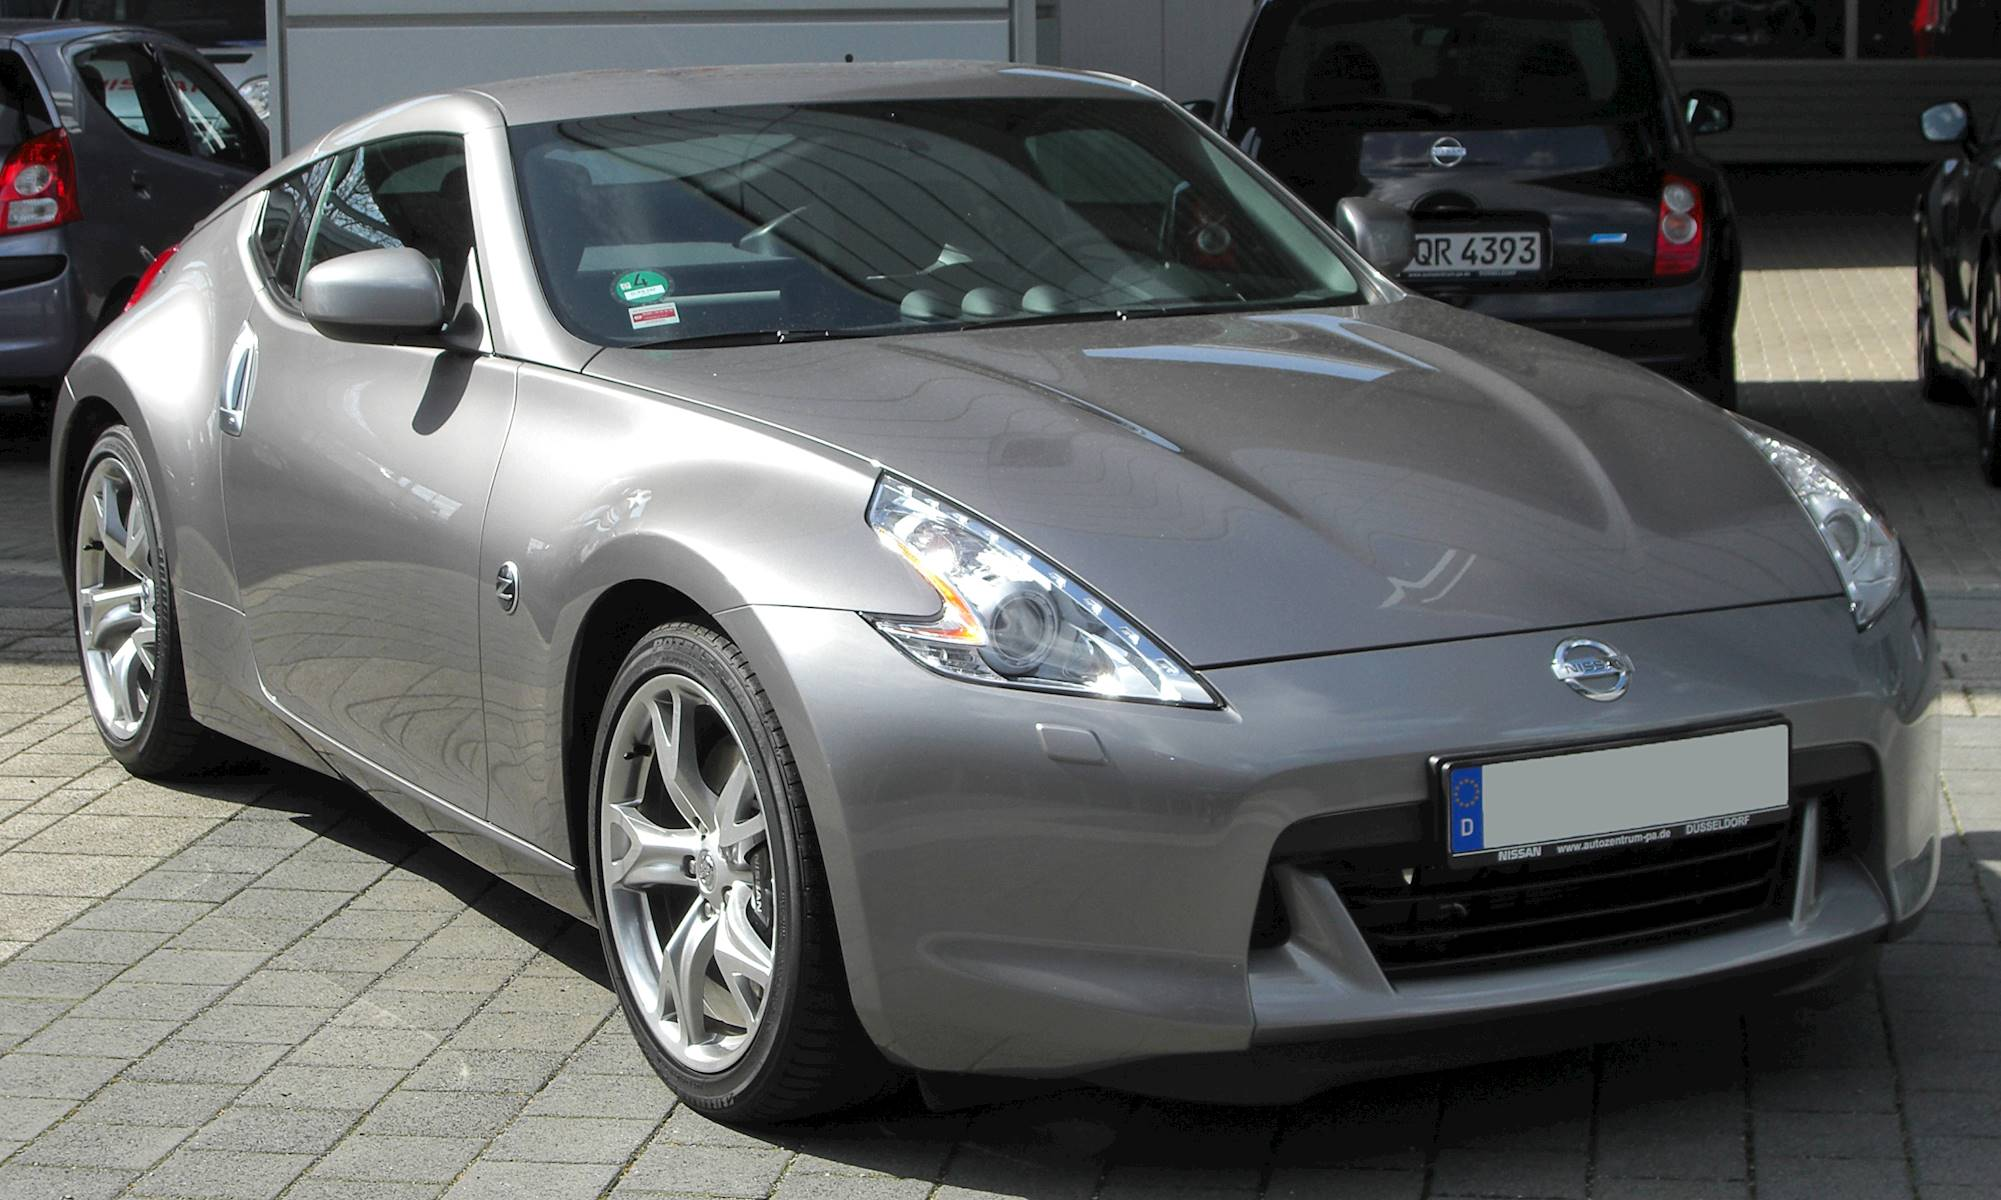 2010 nissan 370z nismo coupe 3 7l v6 manual. Black Bedroom Furniture Sets. Home Design Ideas